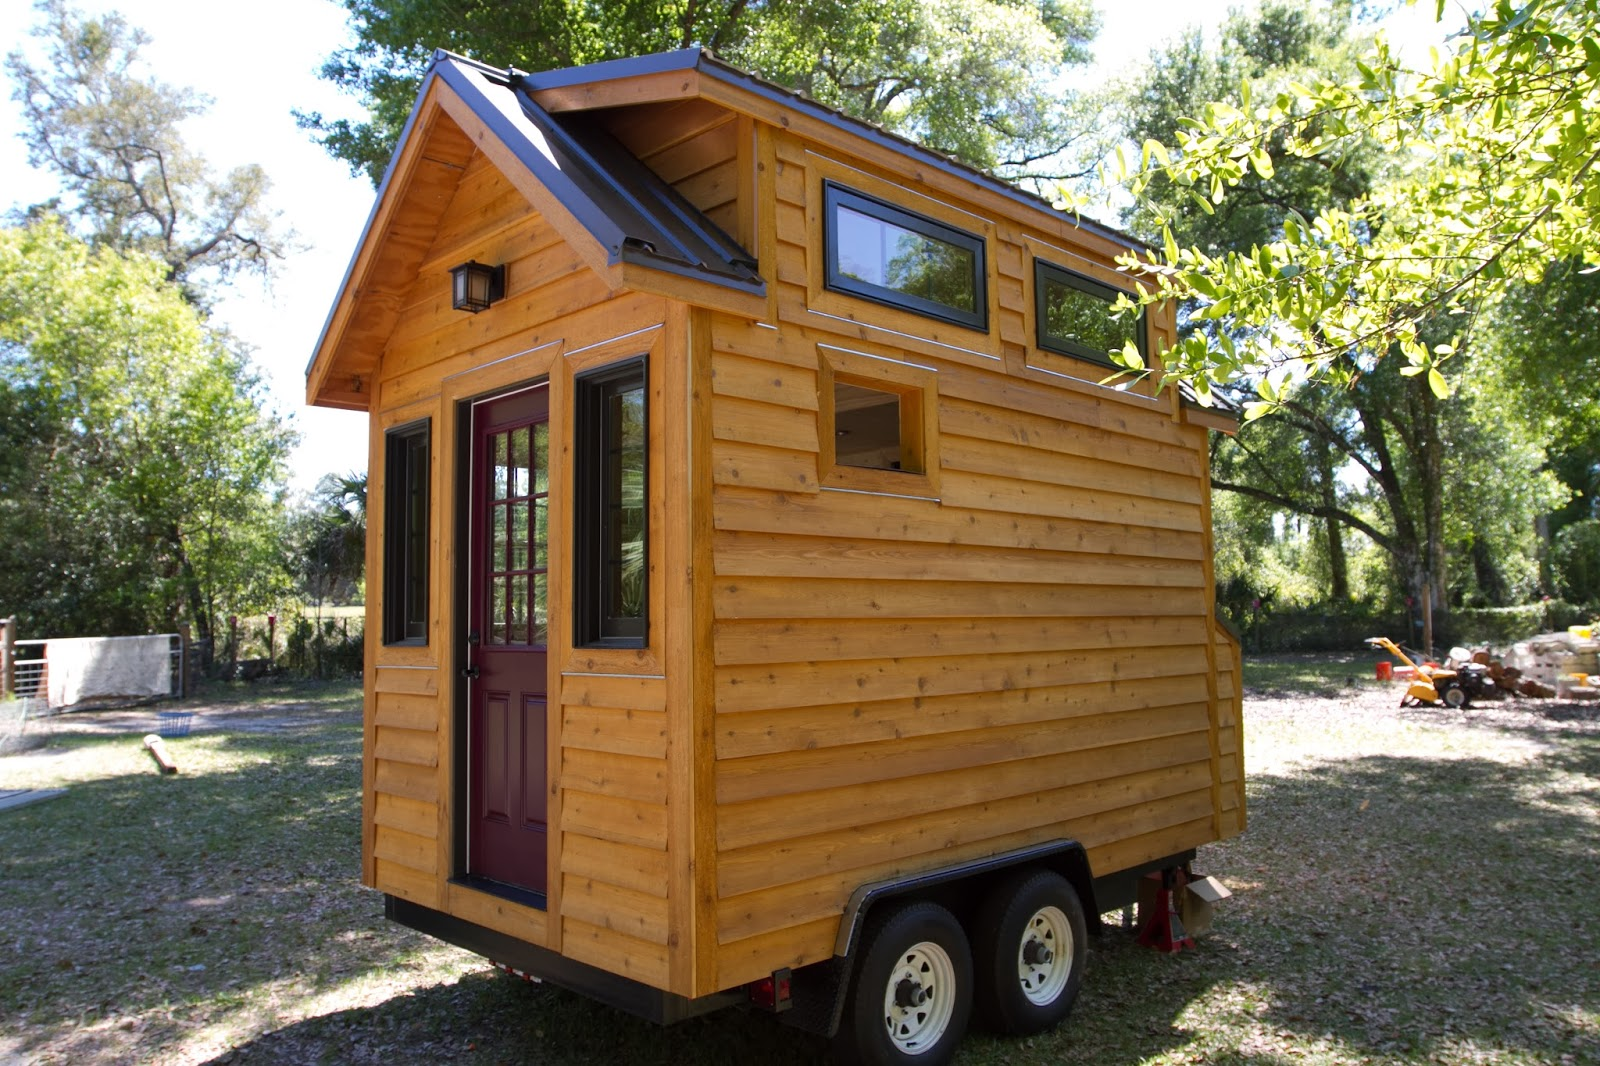 The Atlanta Based Designer Builder Will Display Two Examples Of Tiny Houses At Upcoming Orlando Home Show Oct 4 6 We Caught Up With Dan To Learn More